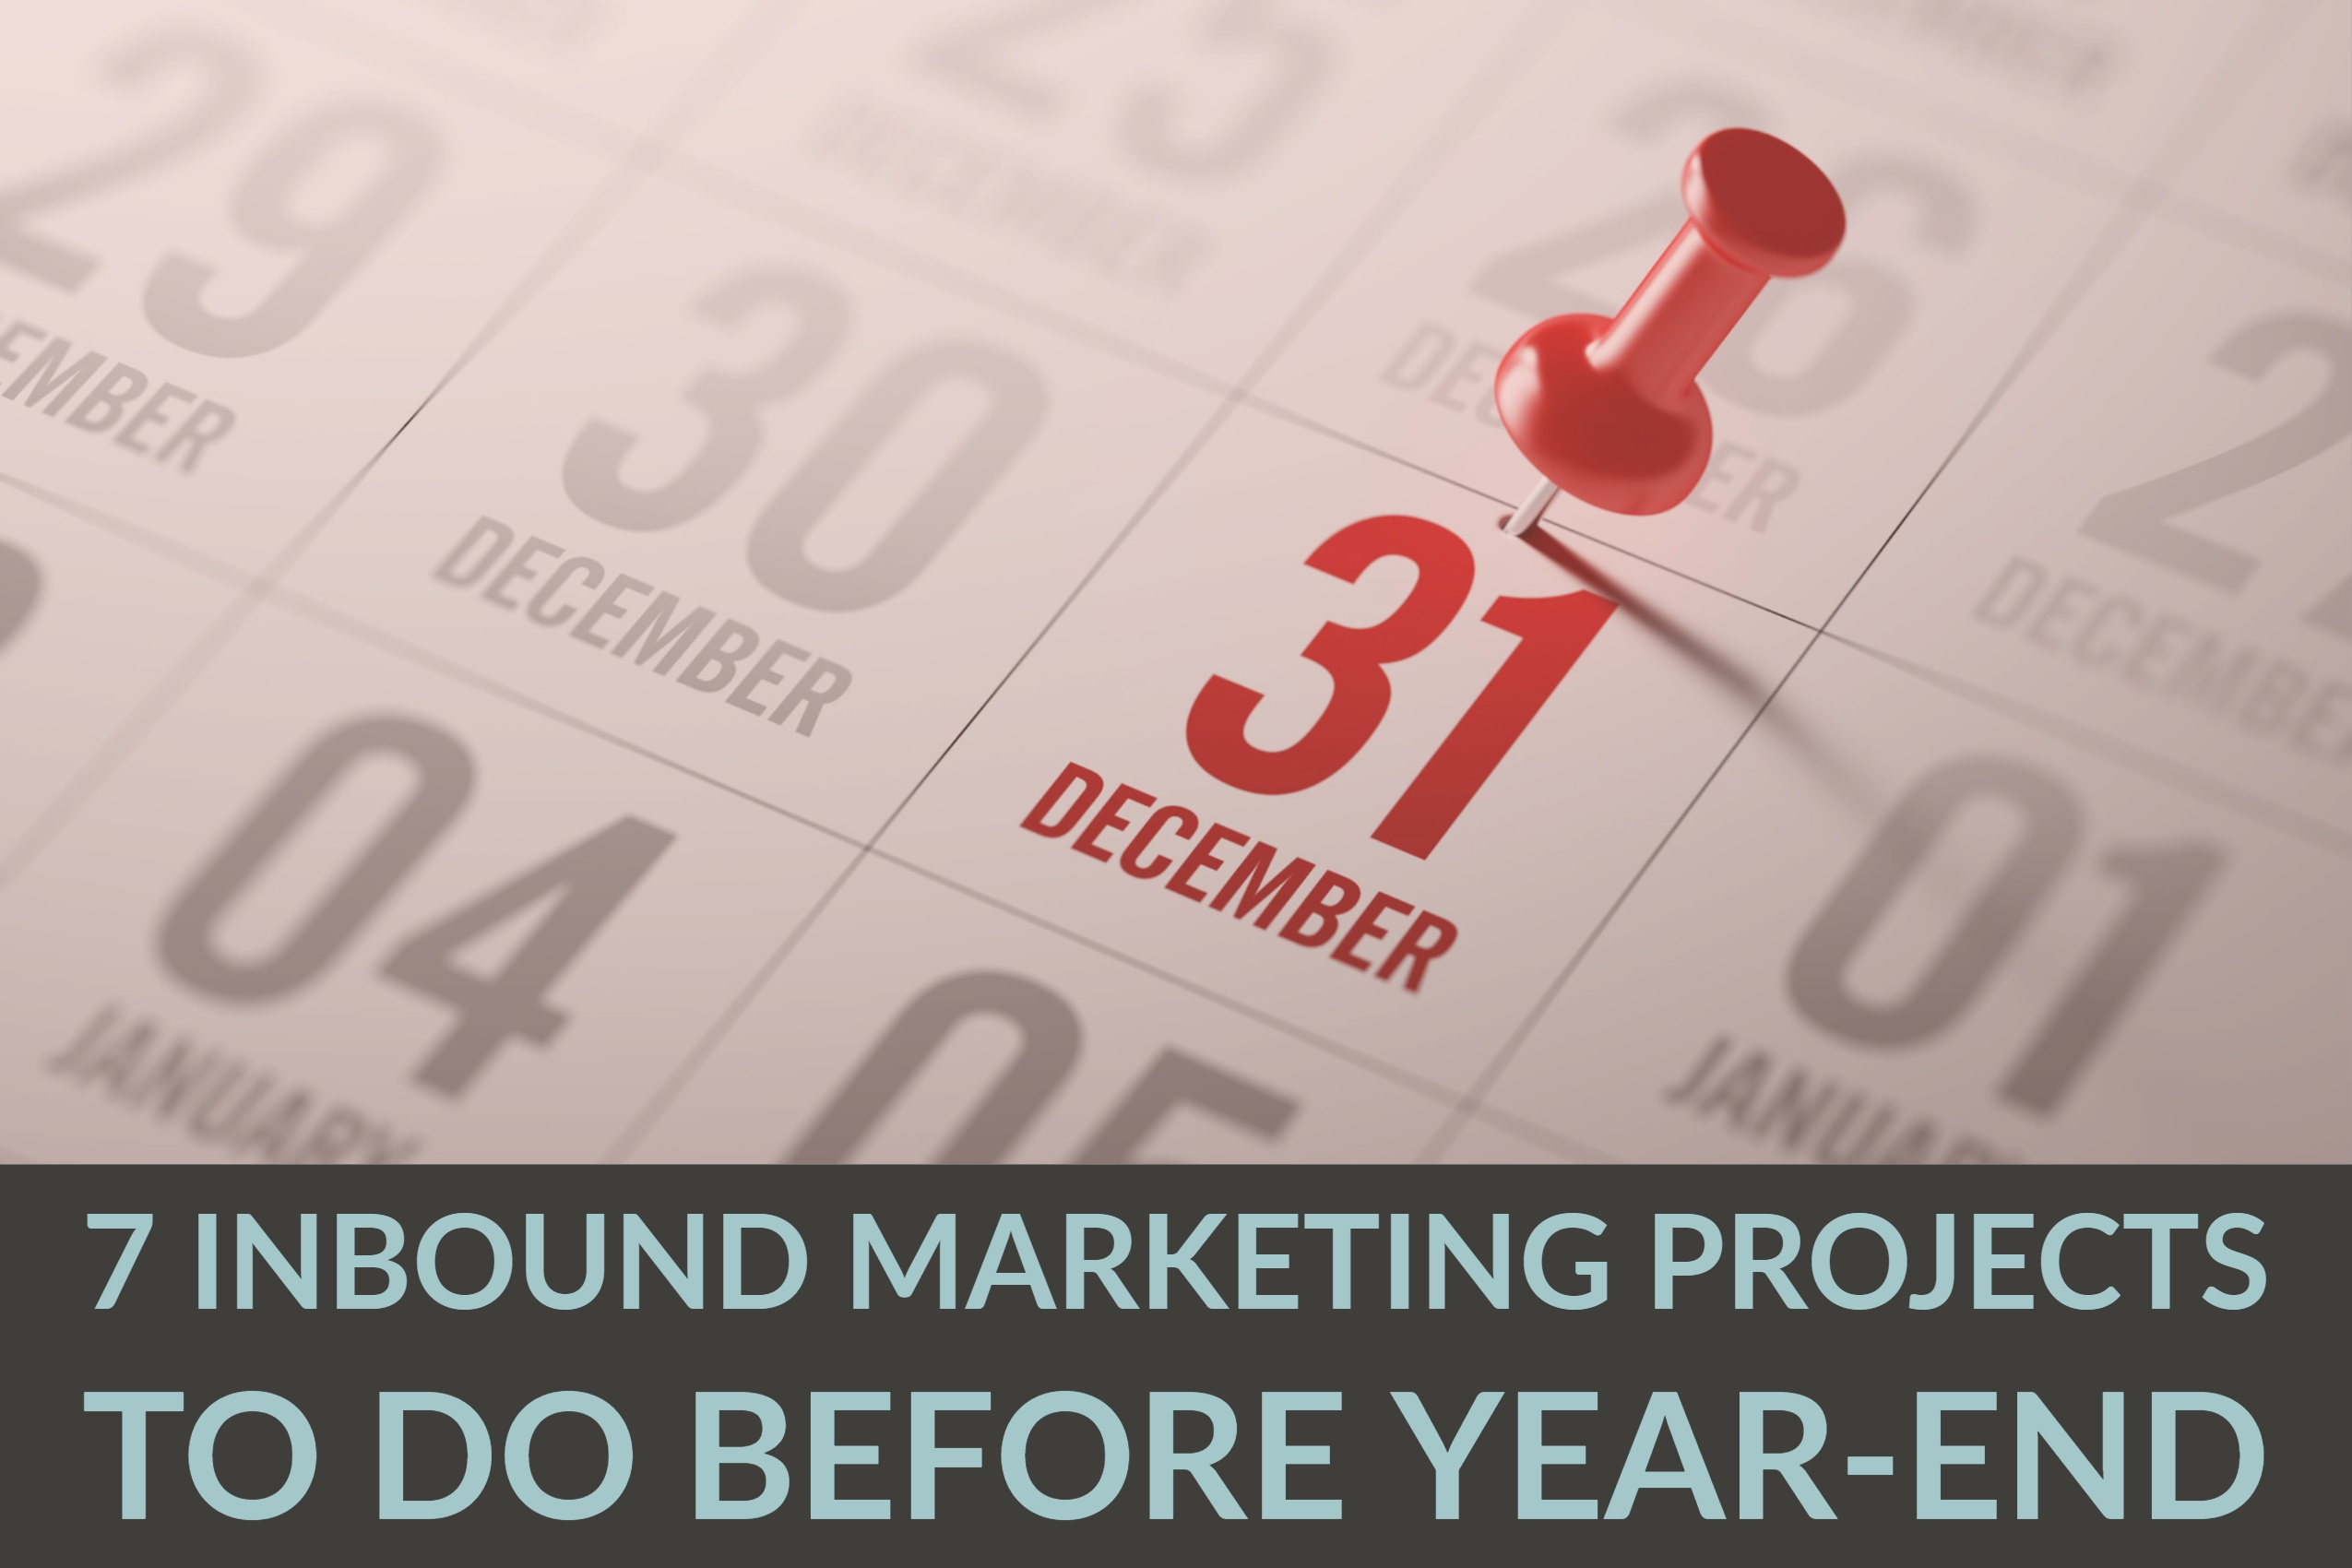 7 Inbound Marketing Projects To Do Before Year-End